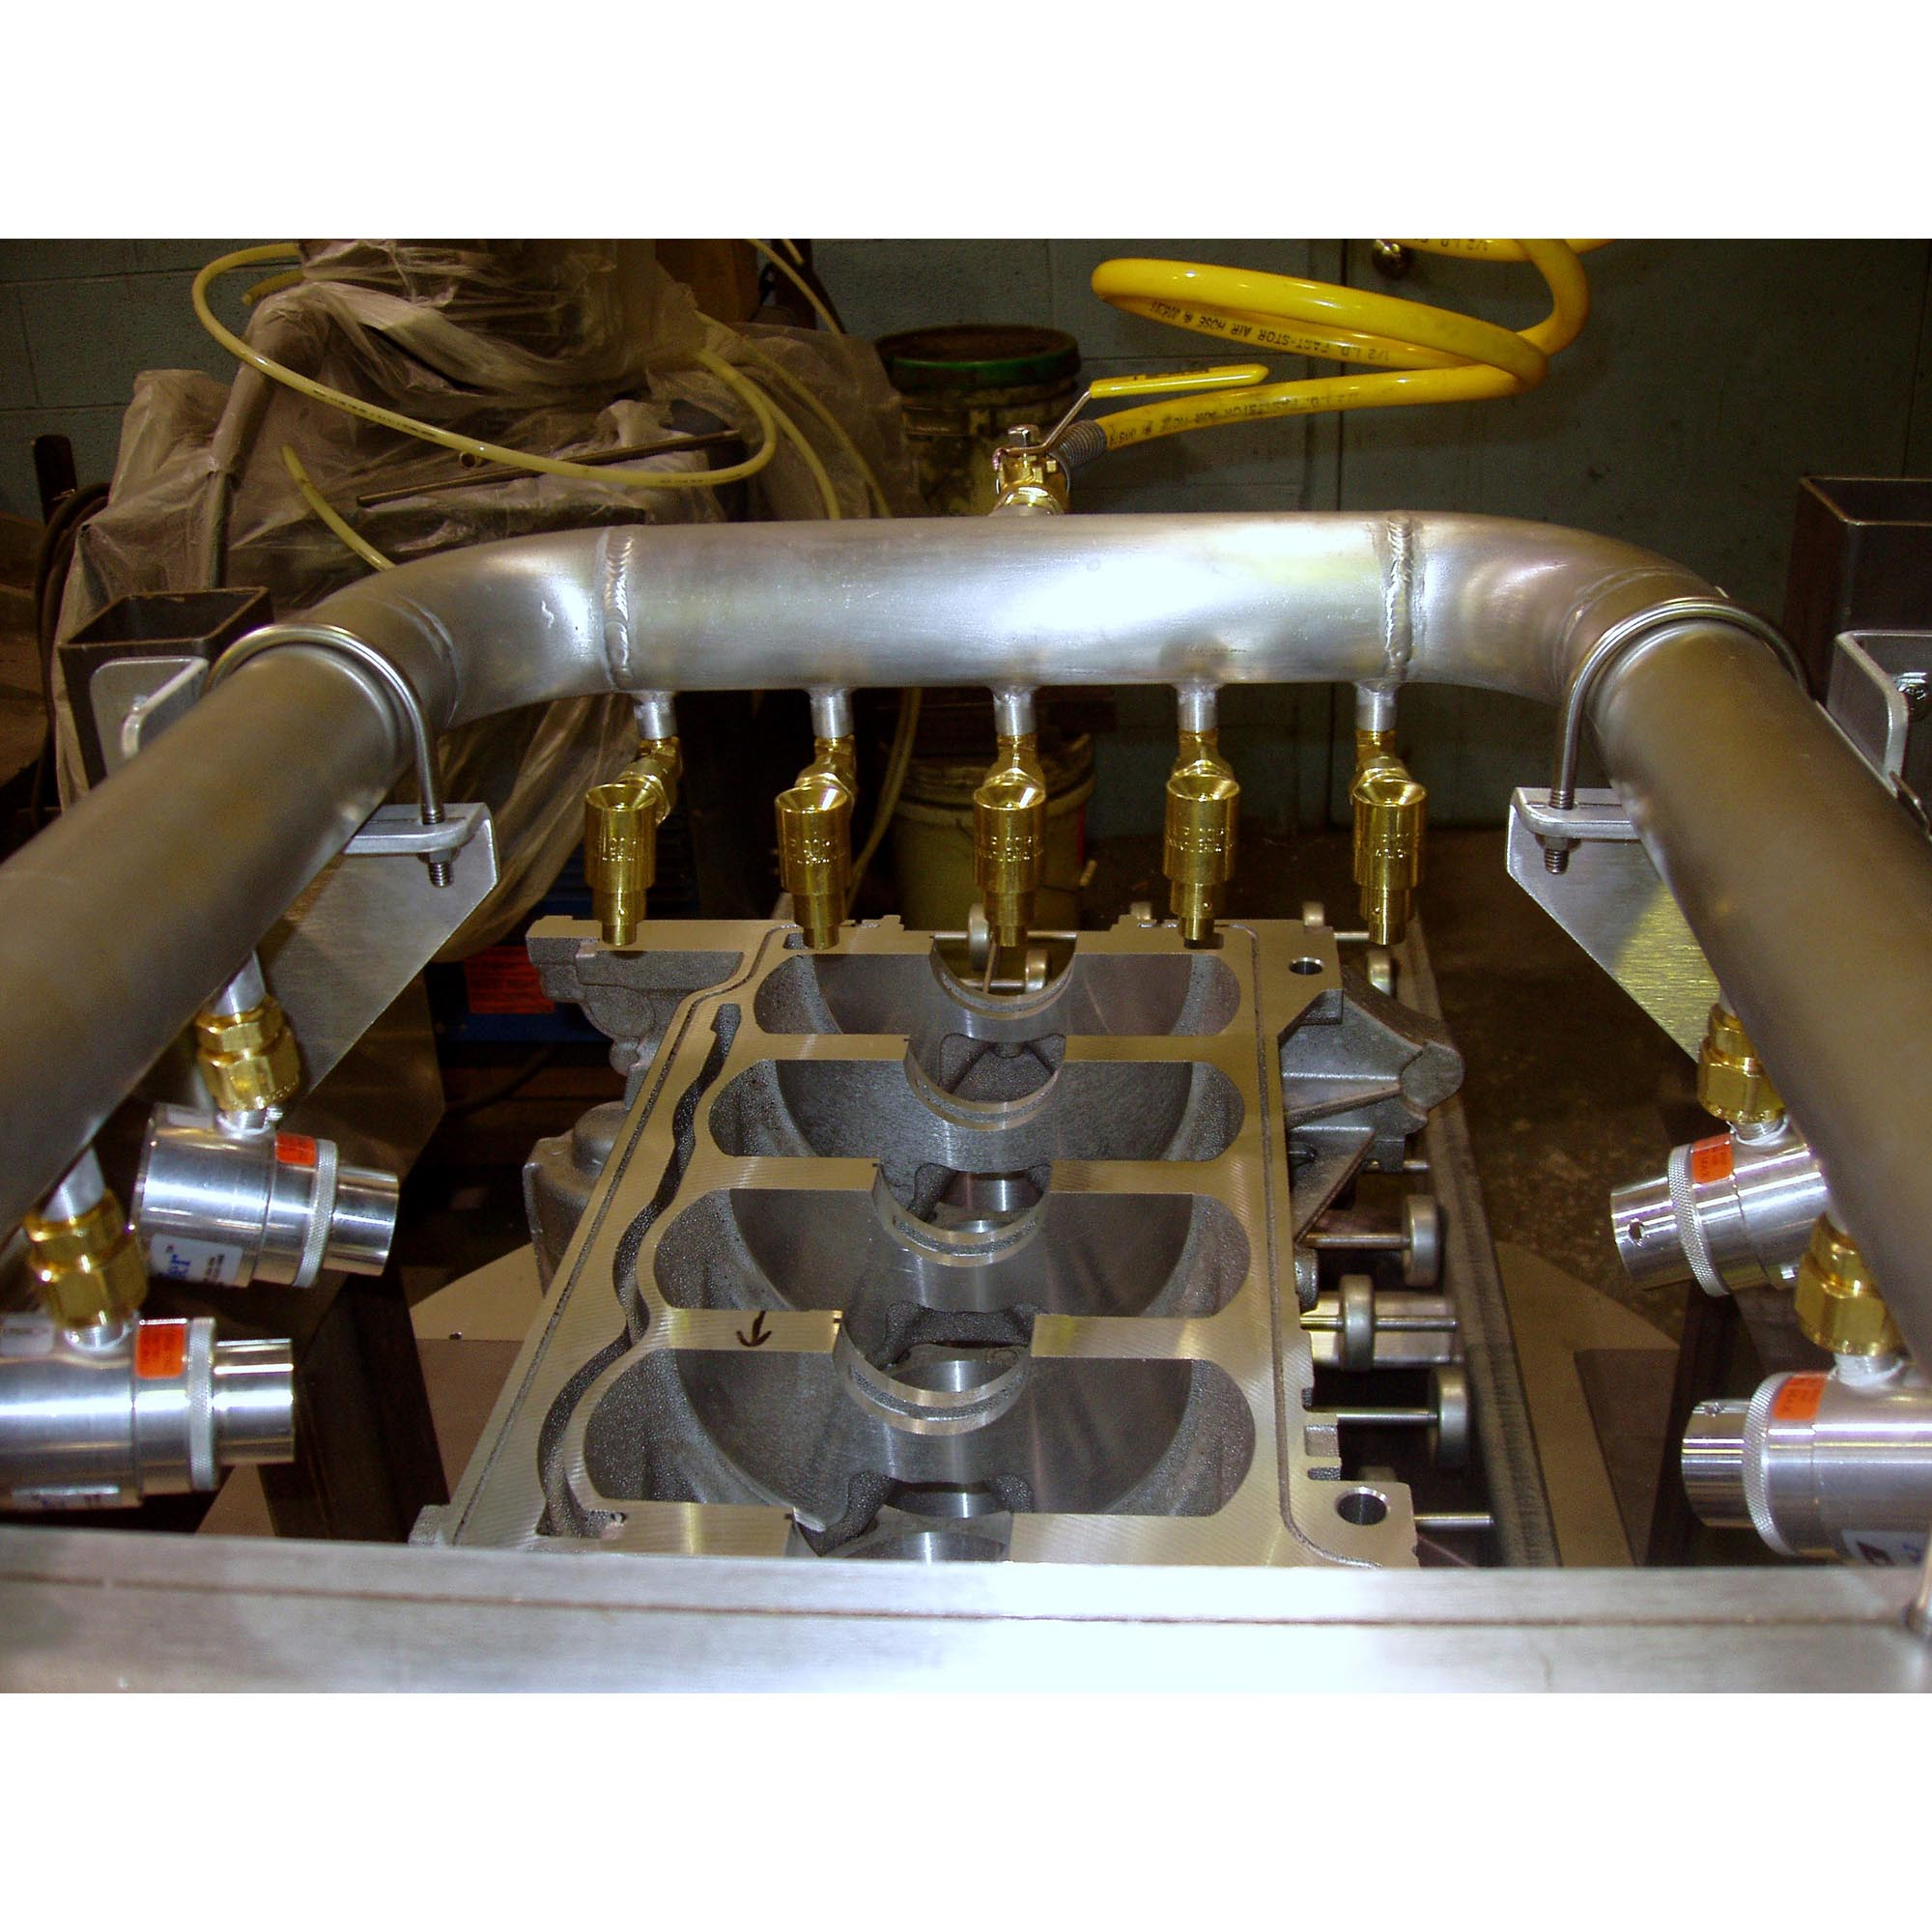 Adjustable Air Amplifiers and High Velocity Air Jets dry an engine block prior to assembly.